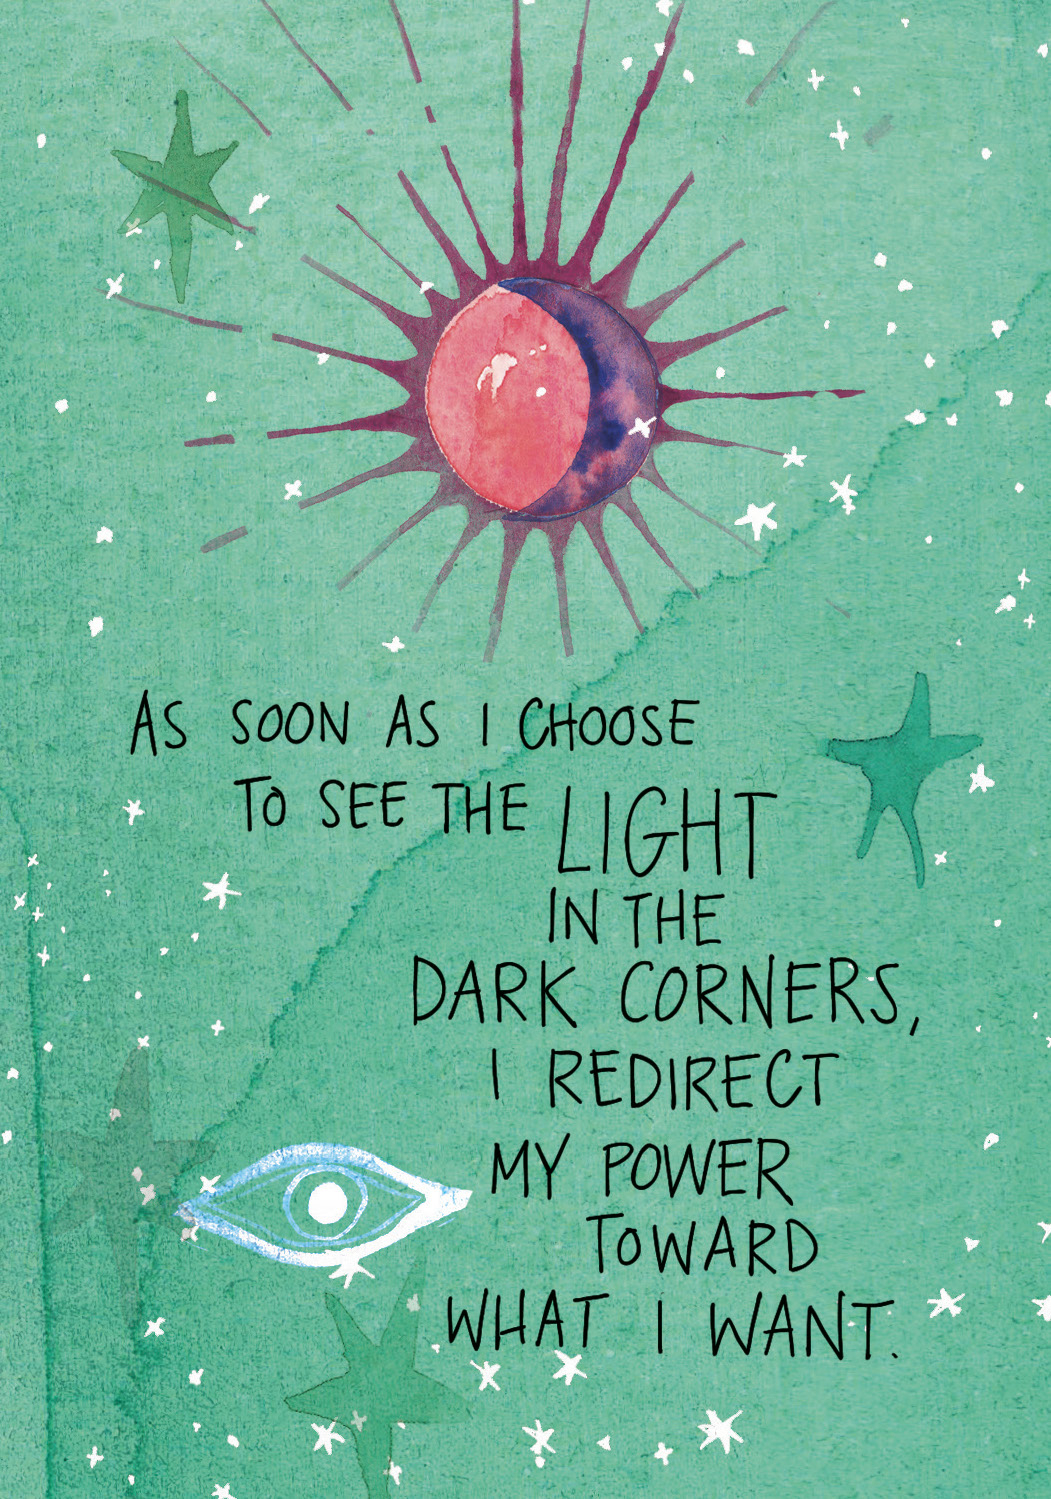 As soon as I choose to see the light in the dark corners, I redirect my power toward what I want